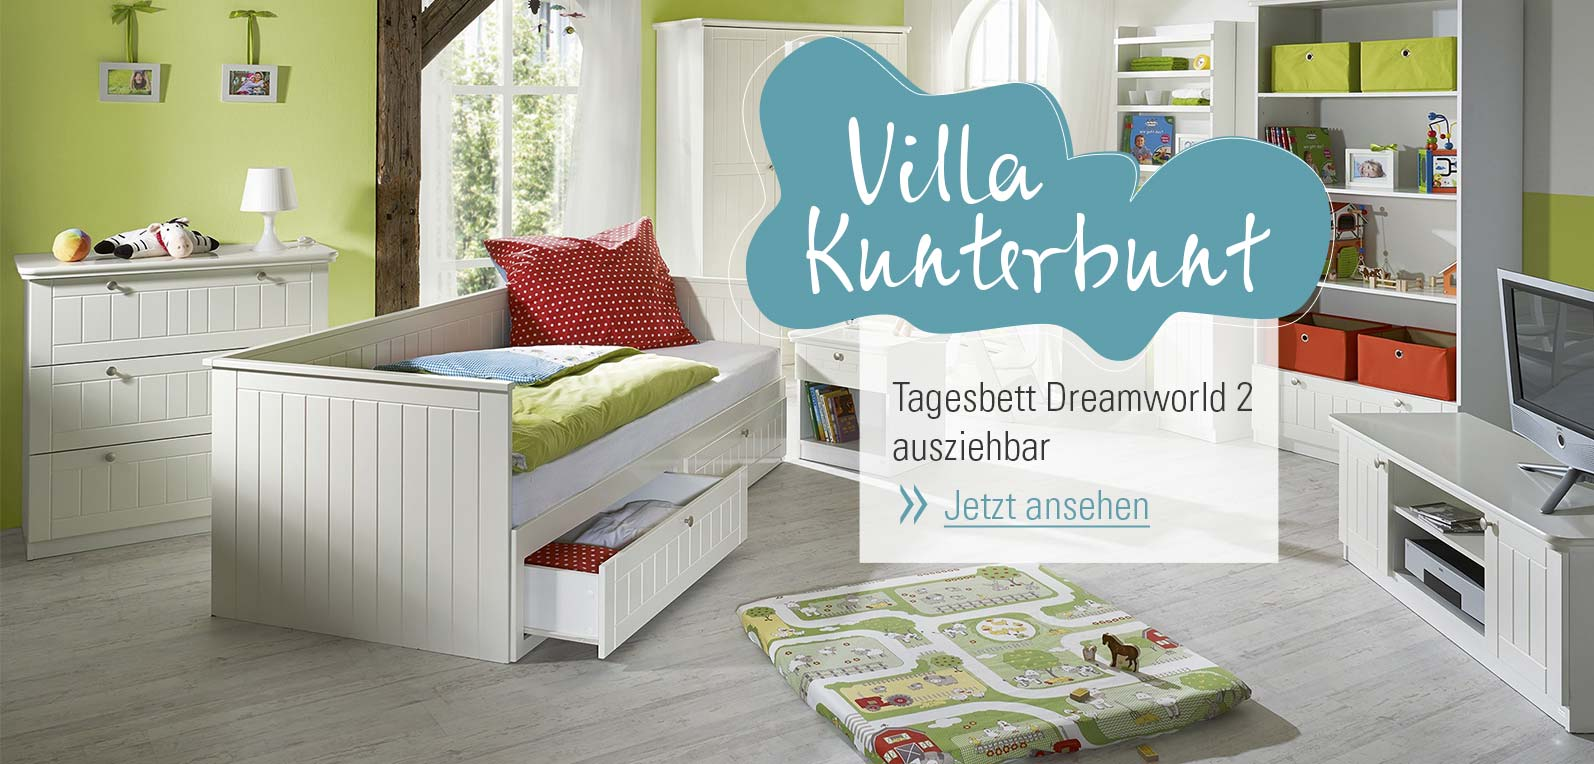 kinderzimmer m bel und ideen zur einrichtung h ffner. Black Bedroom Furniture Sets. Home Design Ideas